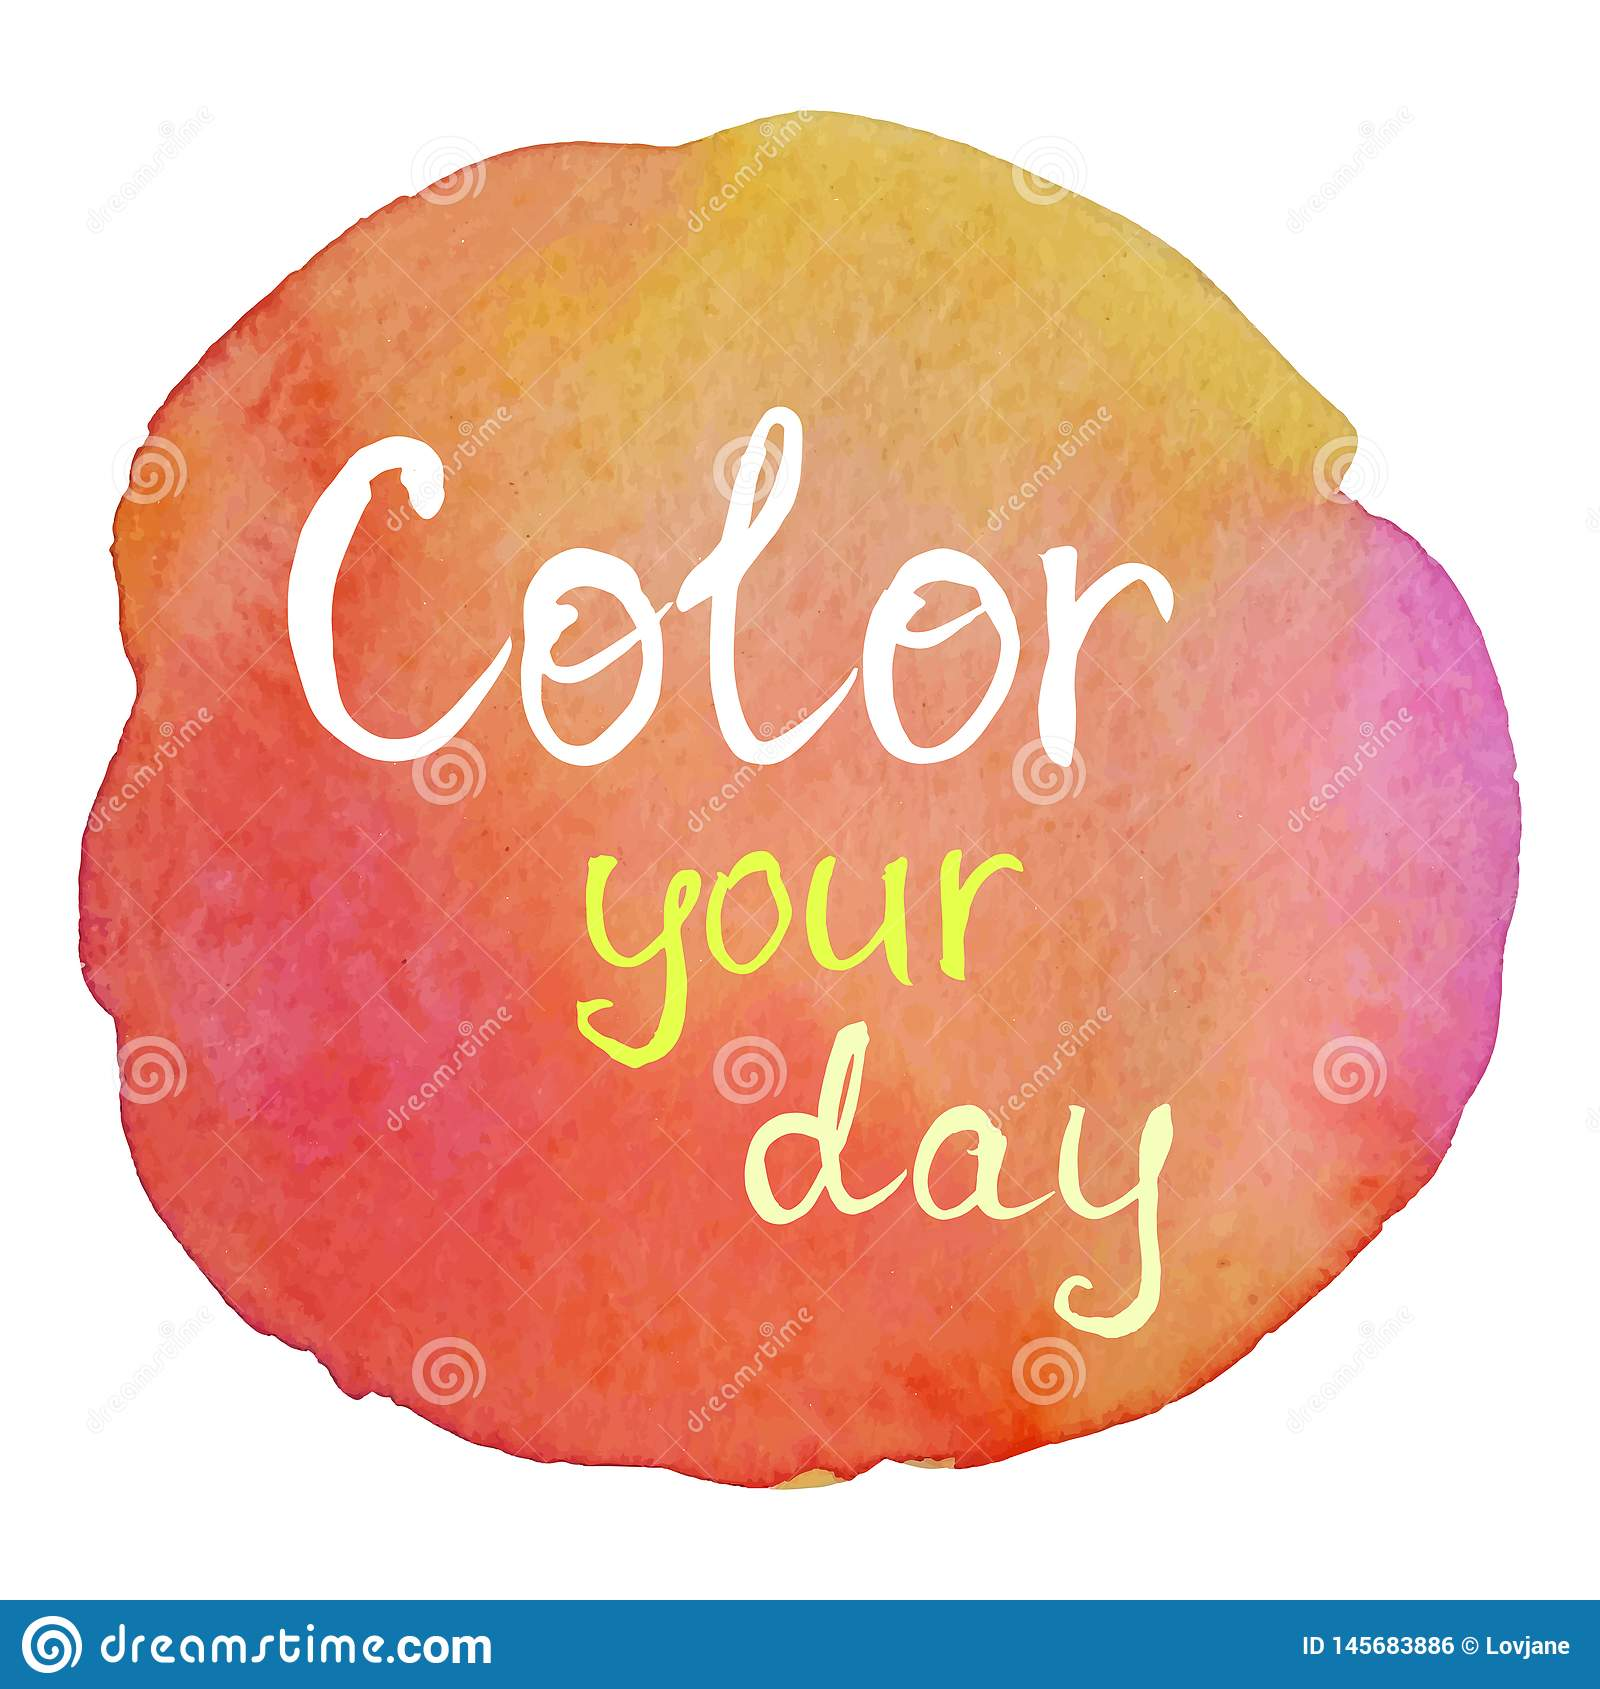 Color your day. Positive motivational slogan on colorful watercolor background